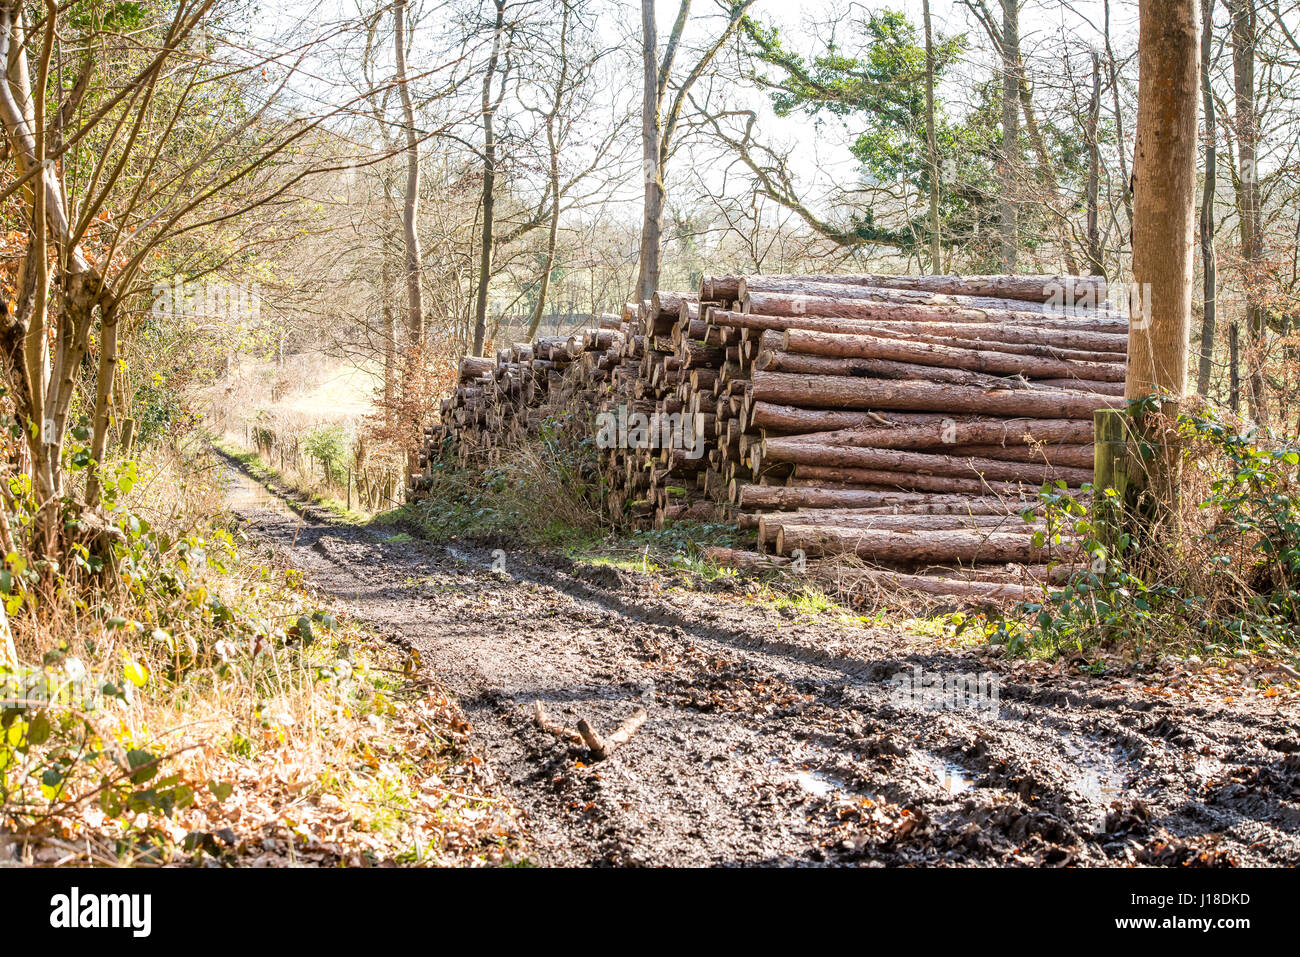 A stack of softwwod lumber awaits collection - Stock Image